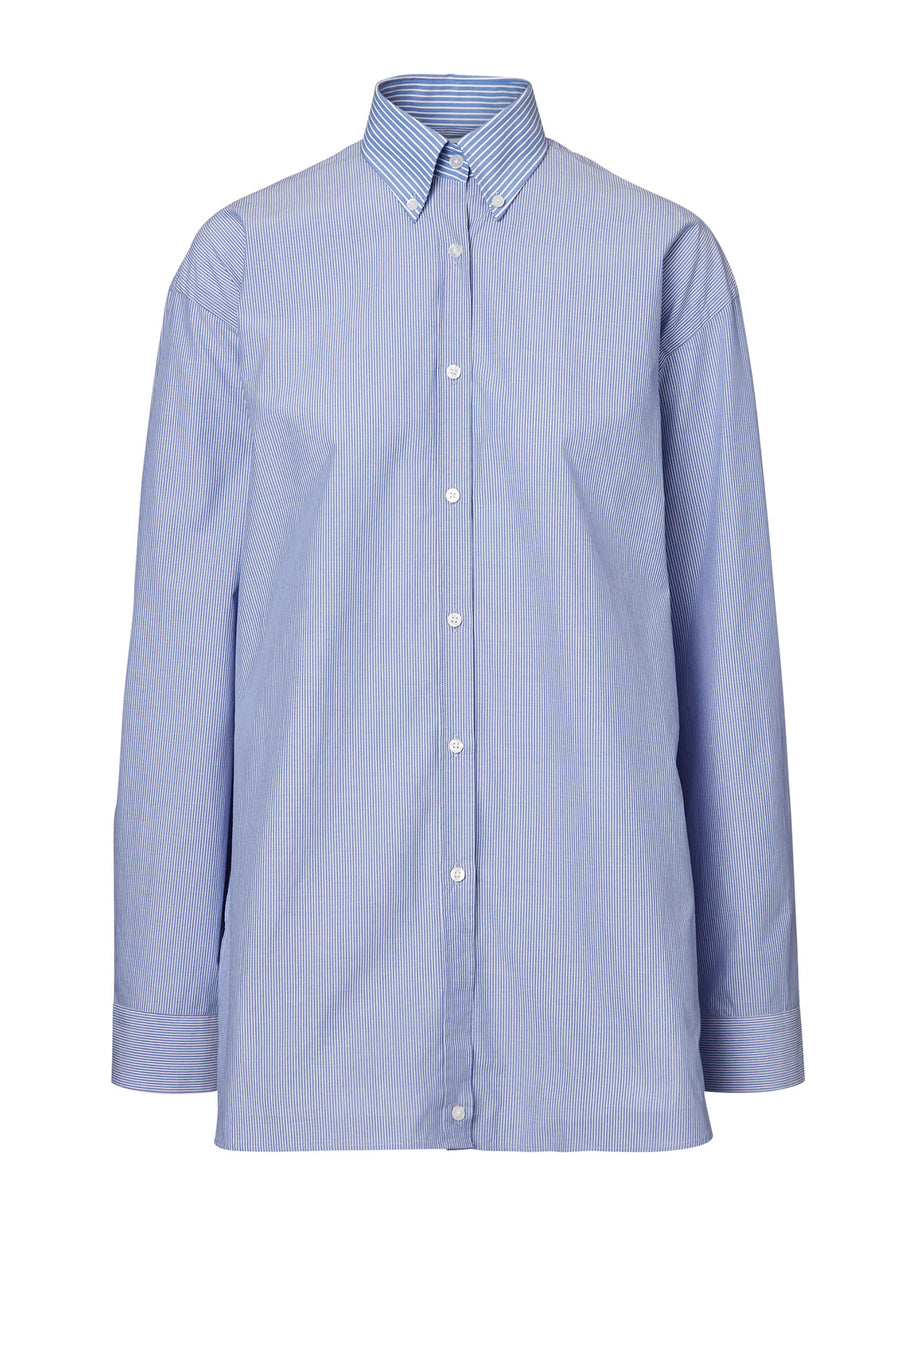 BUTTON COLLAR SHIRT, LONG SLEEVE, OVERSIZED, WHITE BLUE STRIPE color